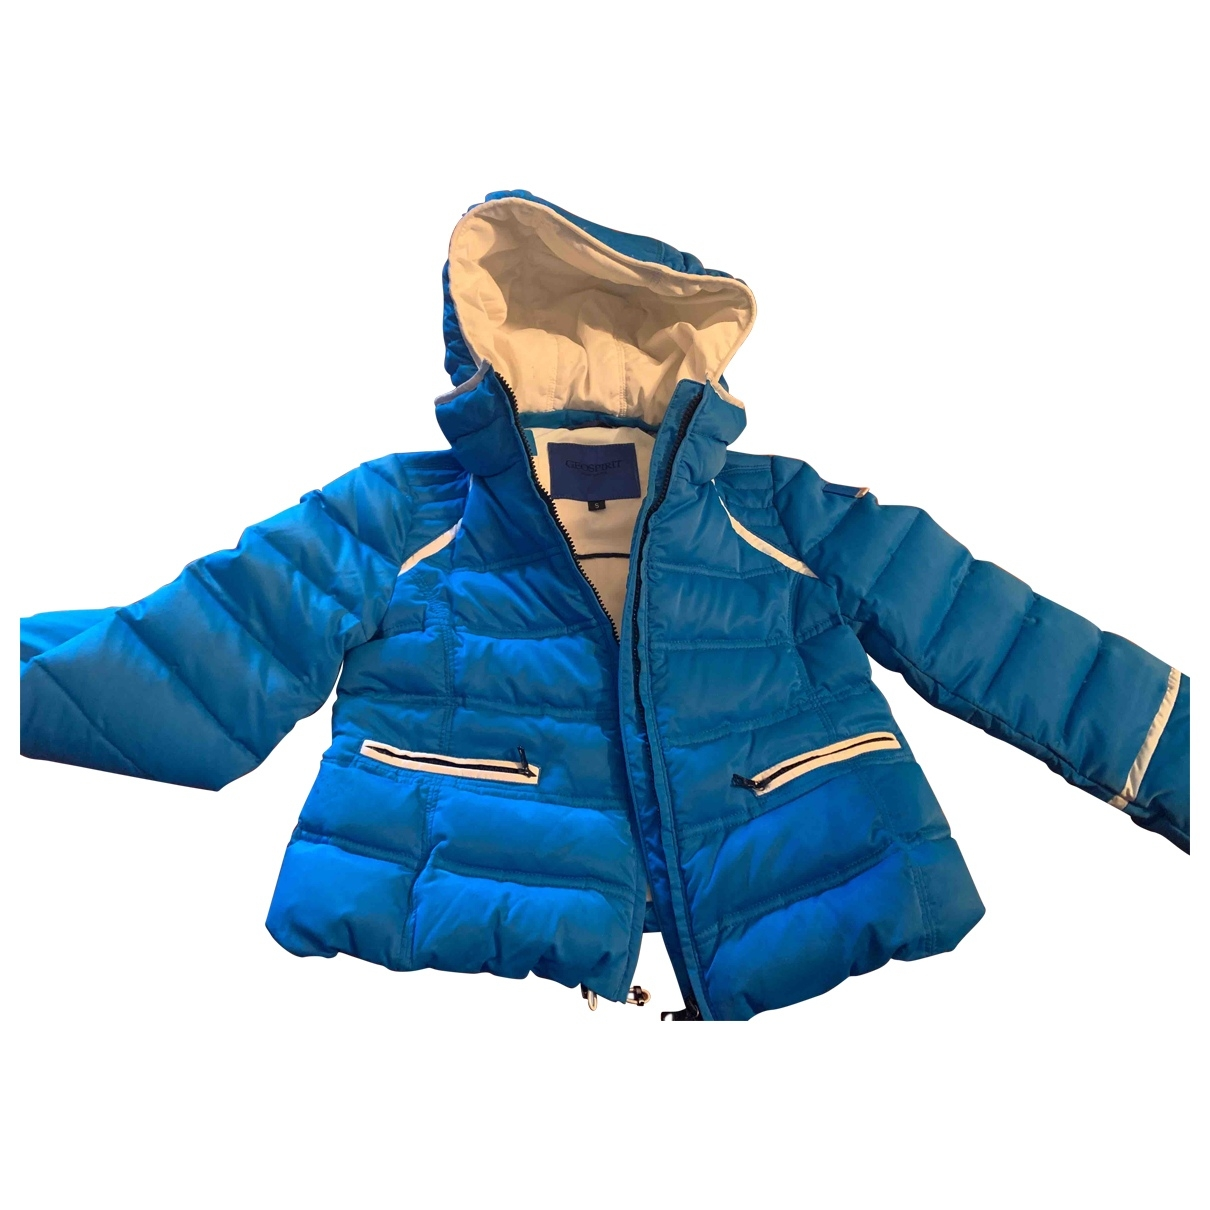 Geospirit \N Blue jacket & coat for Kids 4 years - until 40 inches UK